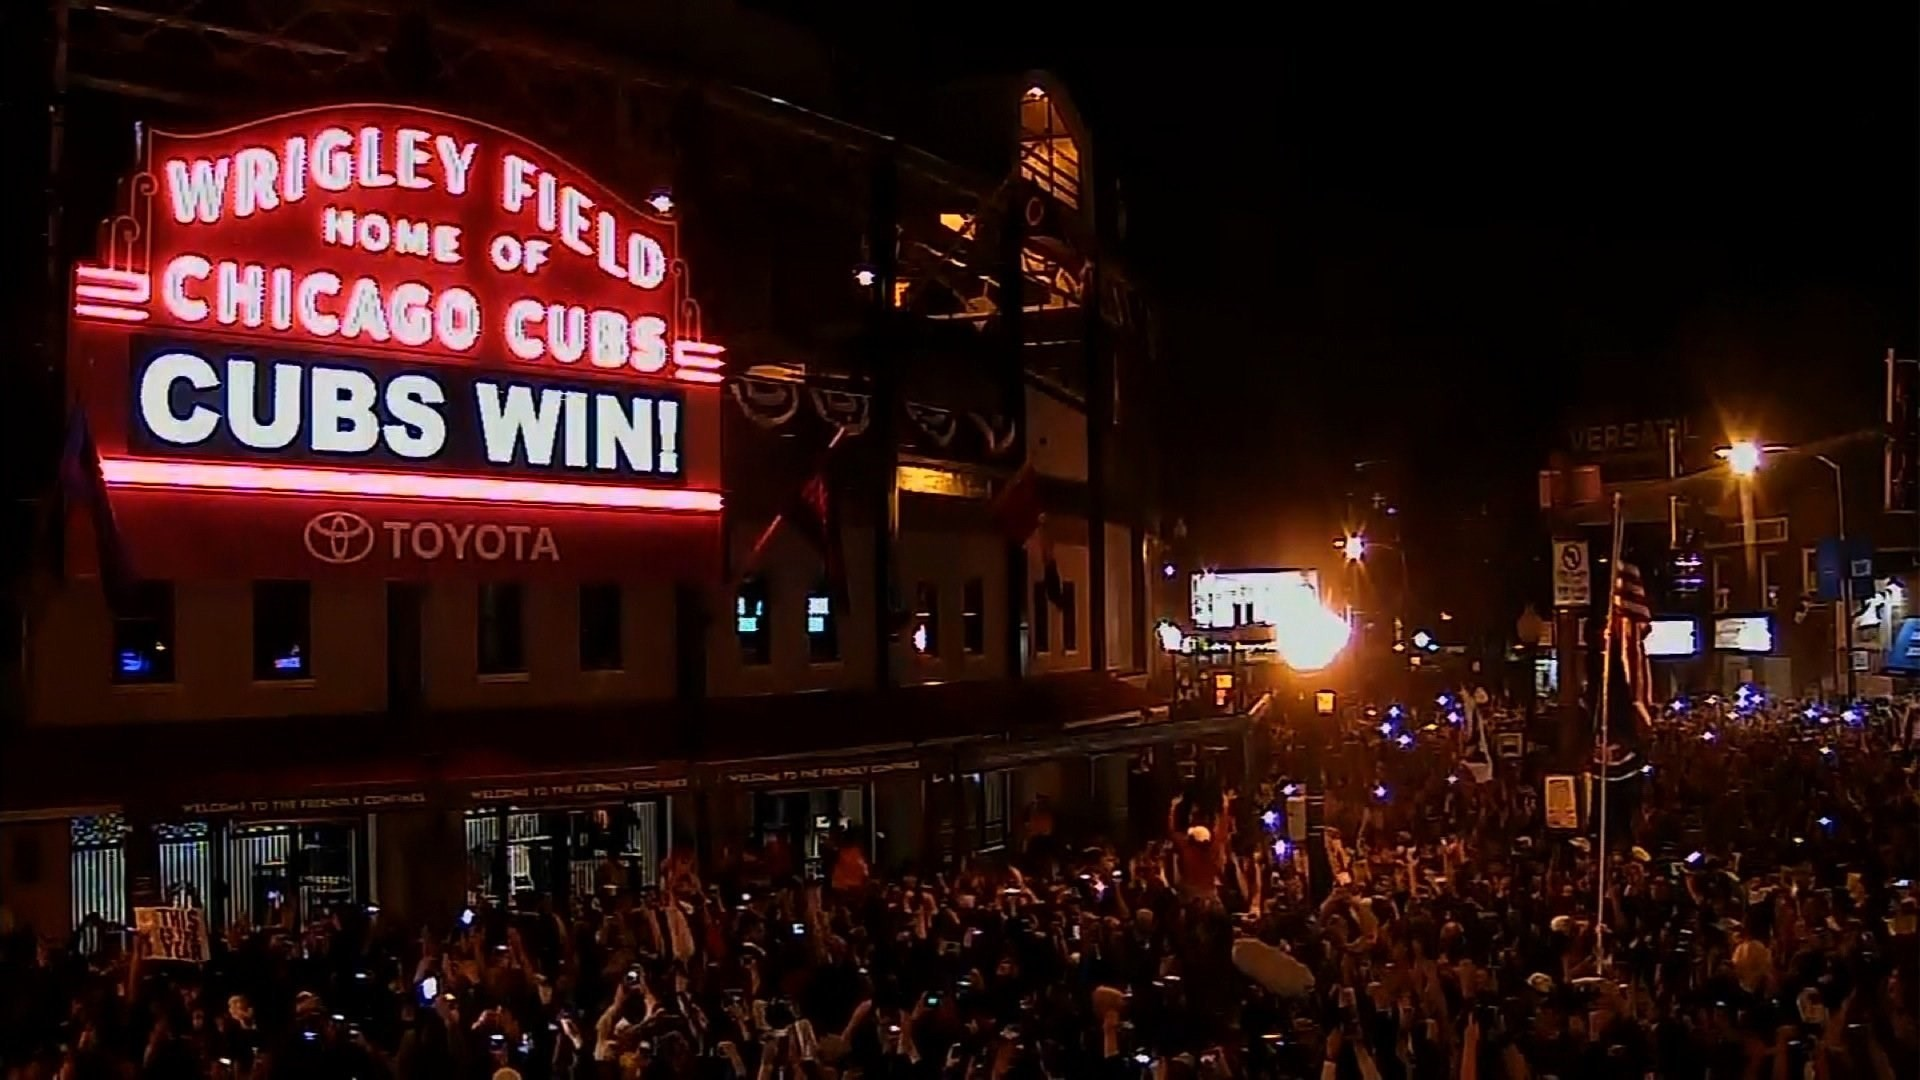 Parade for World Series champion Cubs on Friday